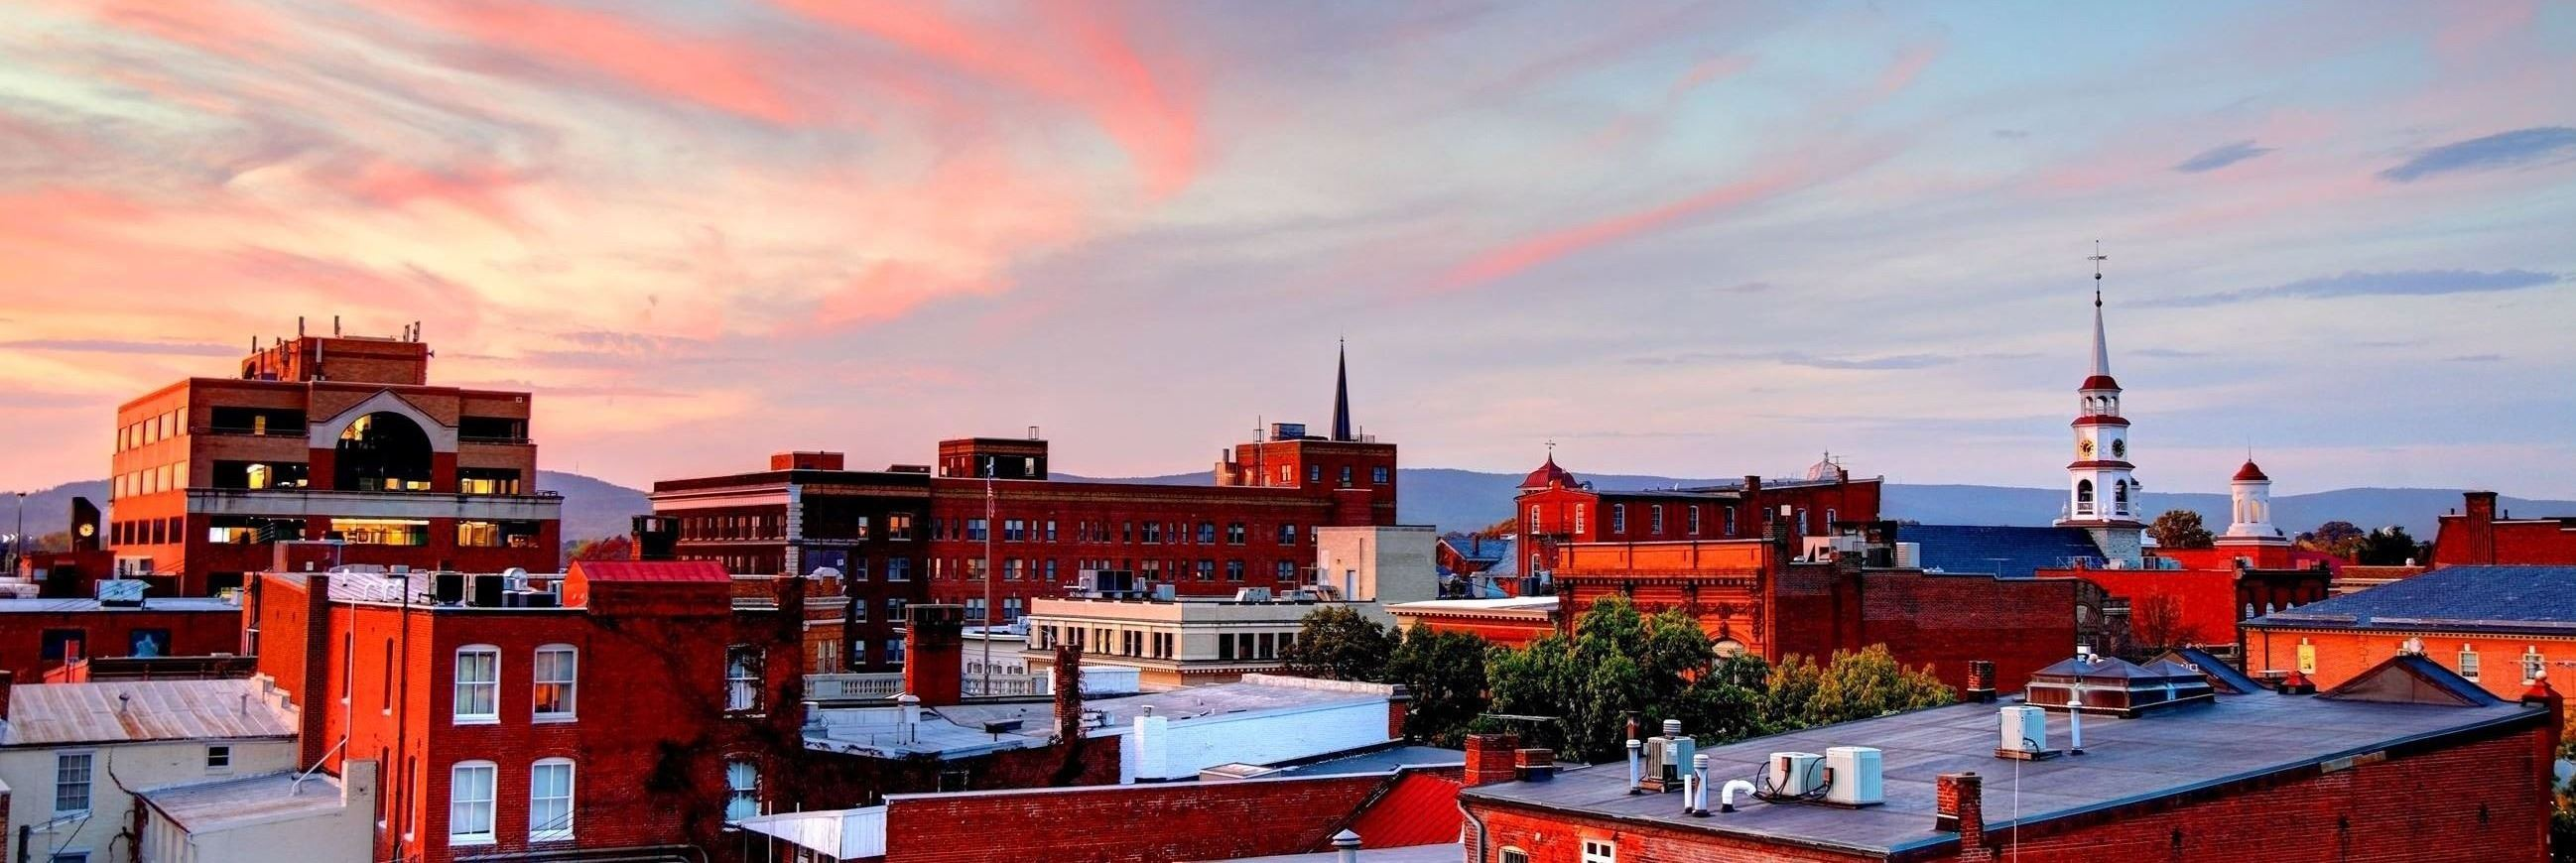 Downtown Frederick at Dusk